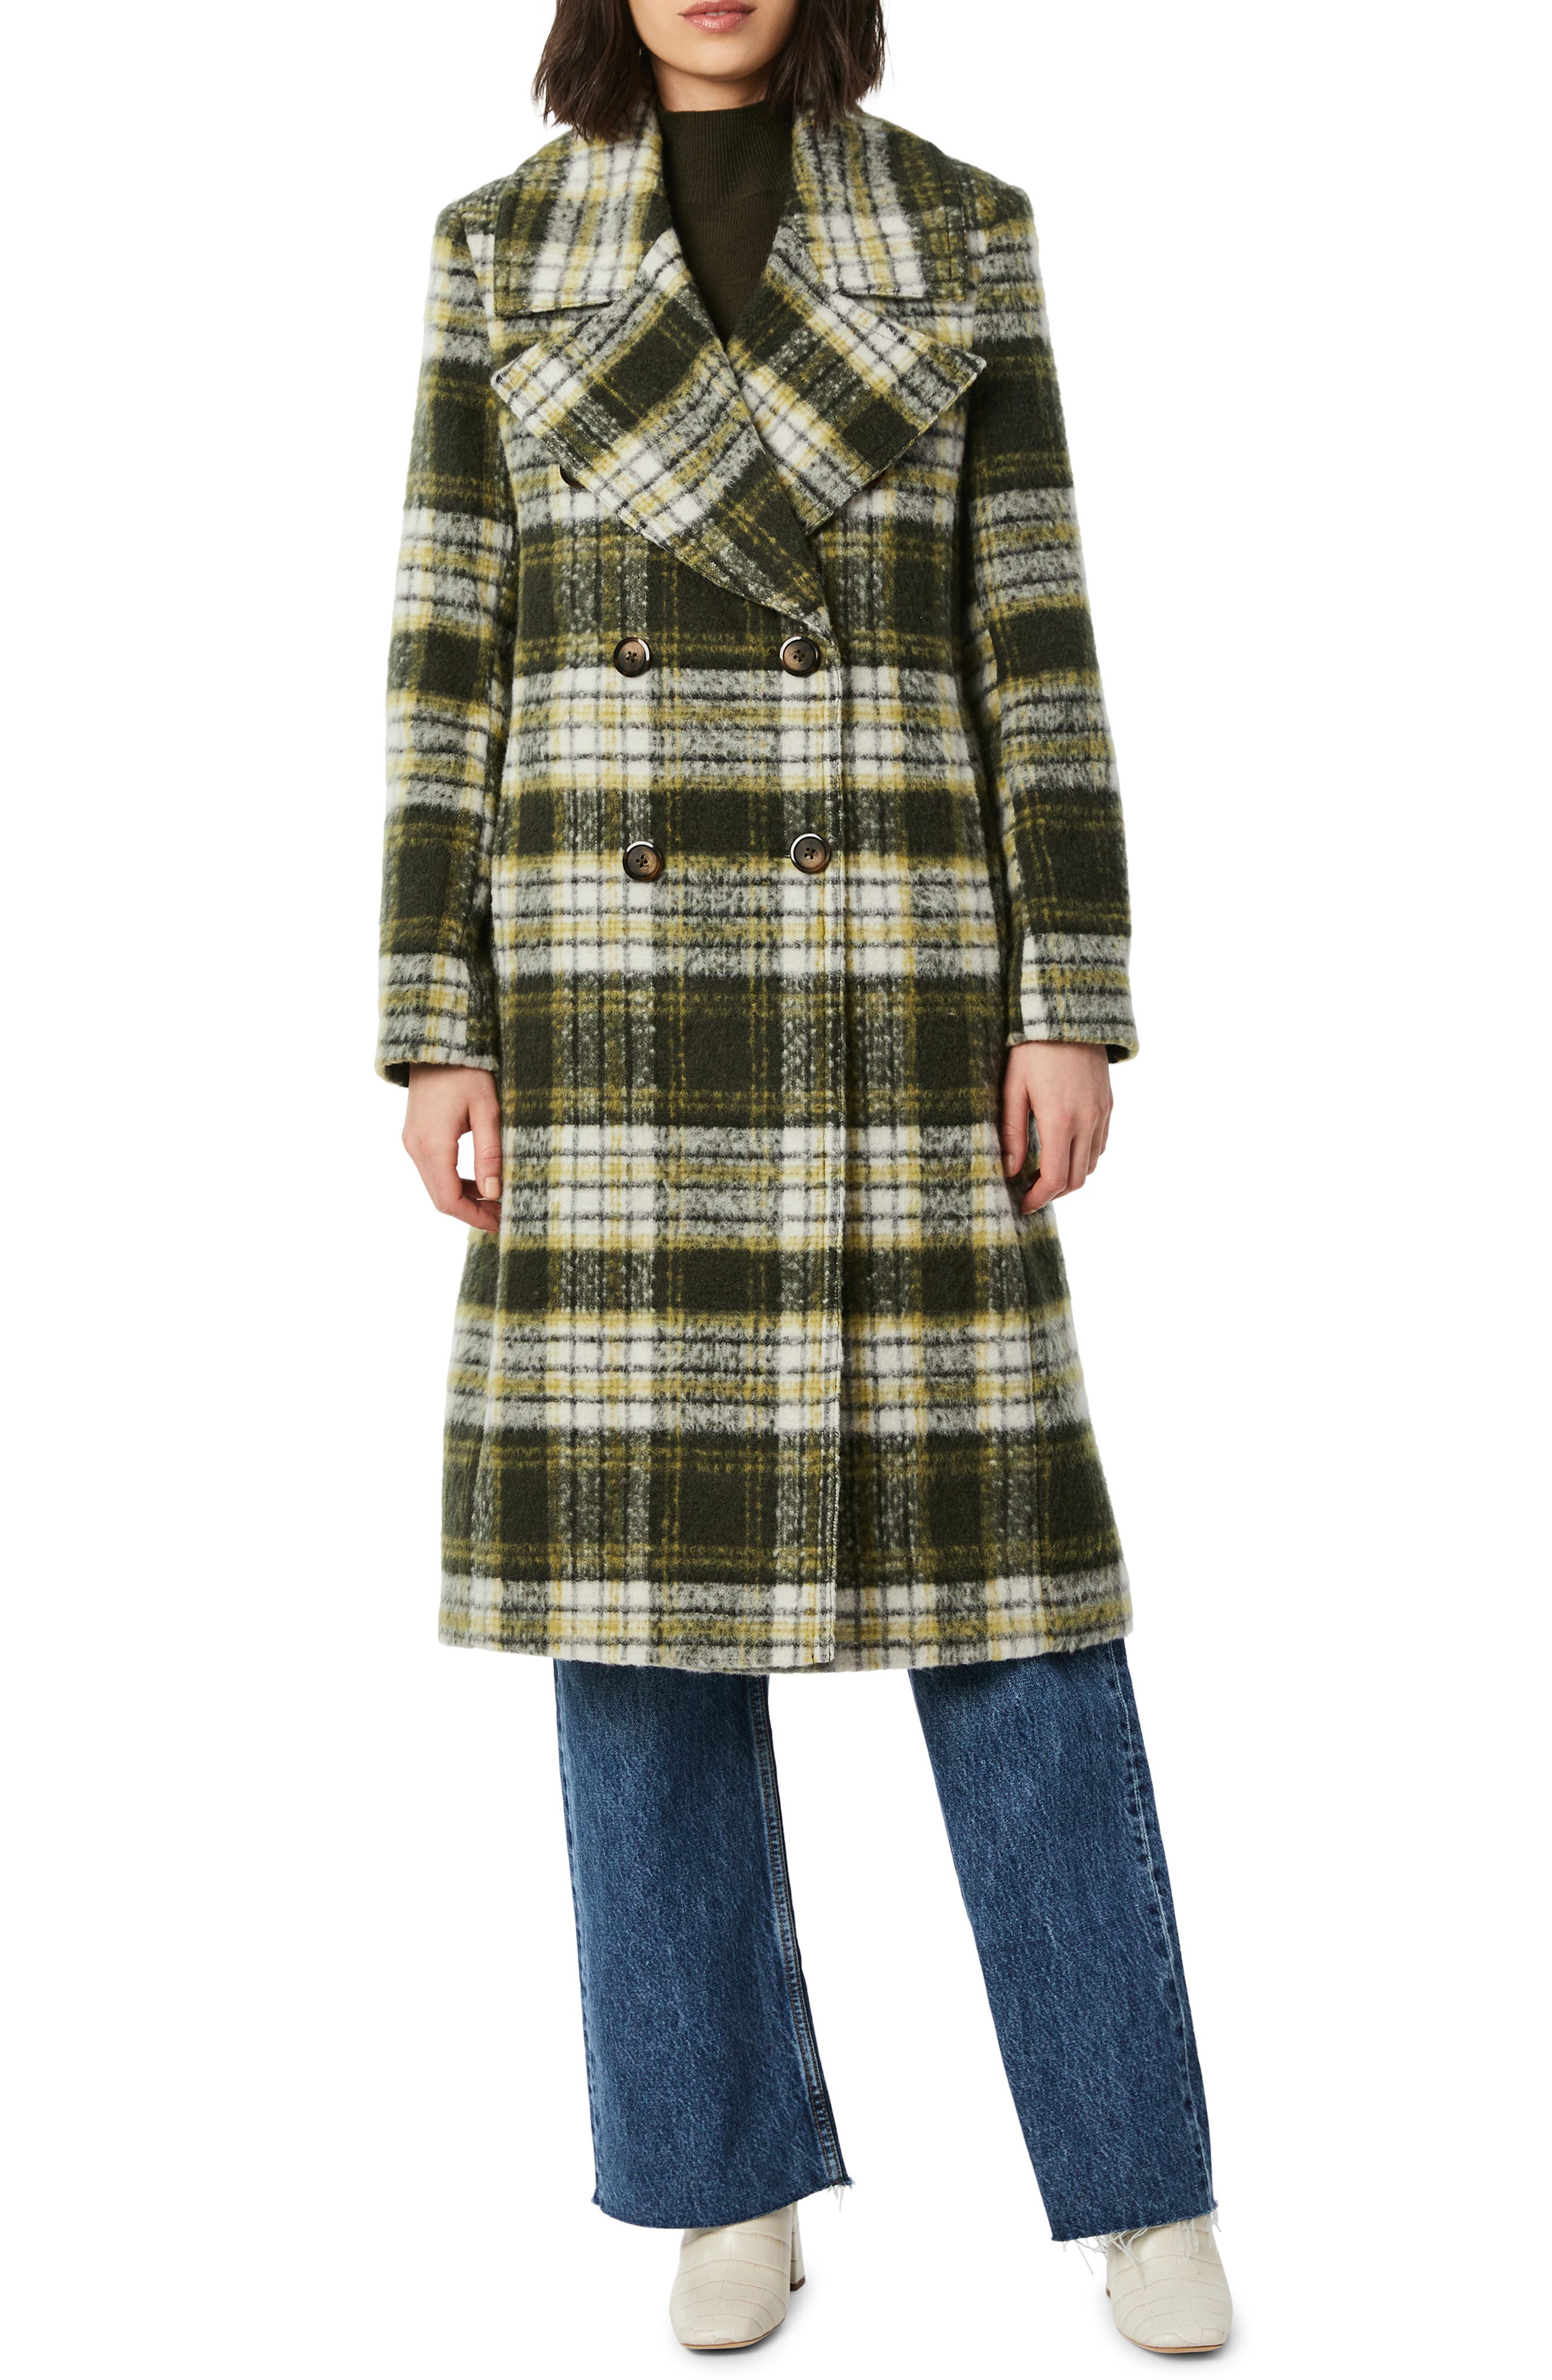 70s Jackets, Furs, Vests, Ponchos Womens Bernardo Plaid Double Breasted Wool Blend Coat Size Small - Green $250.00 AT vintagedancer.com